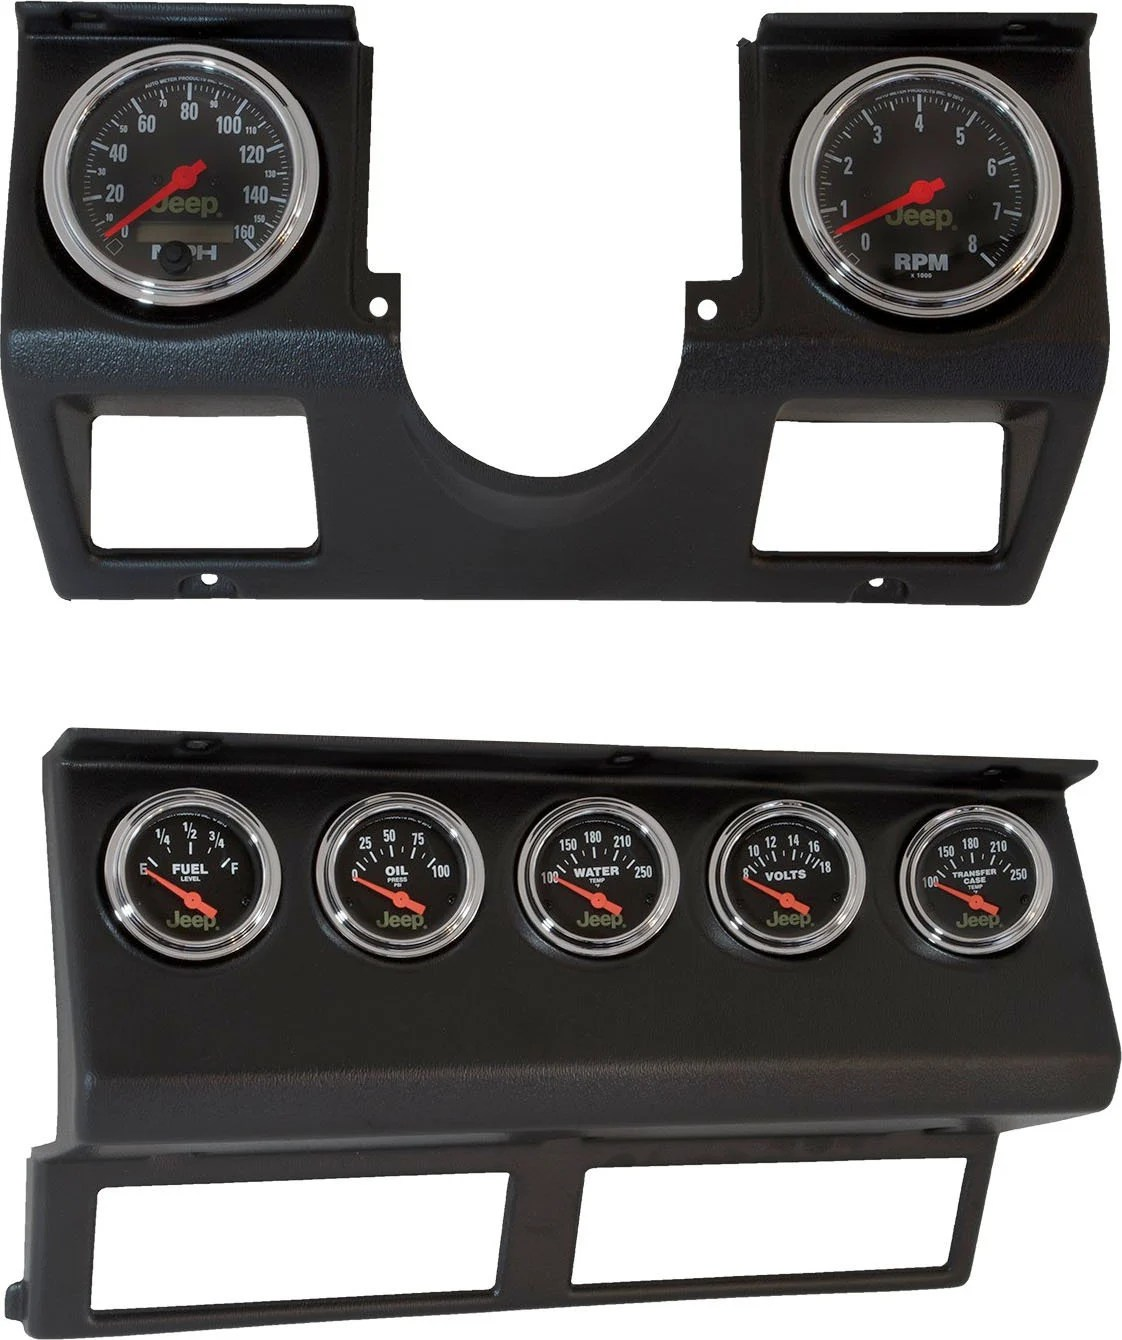 hight resolution of auto meter 7040 dash panel with gauges for 87 95 jeep wrangler yj quadratec